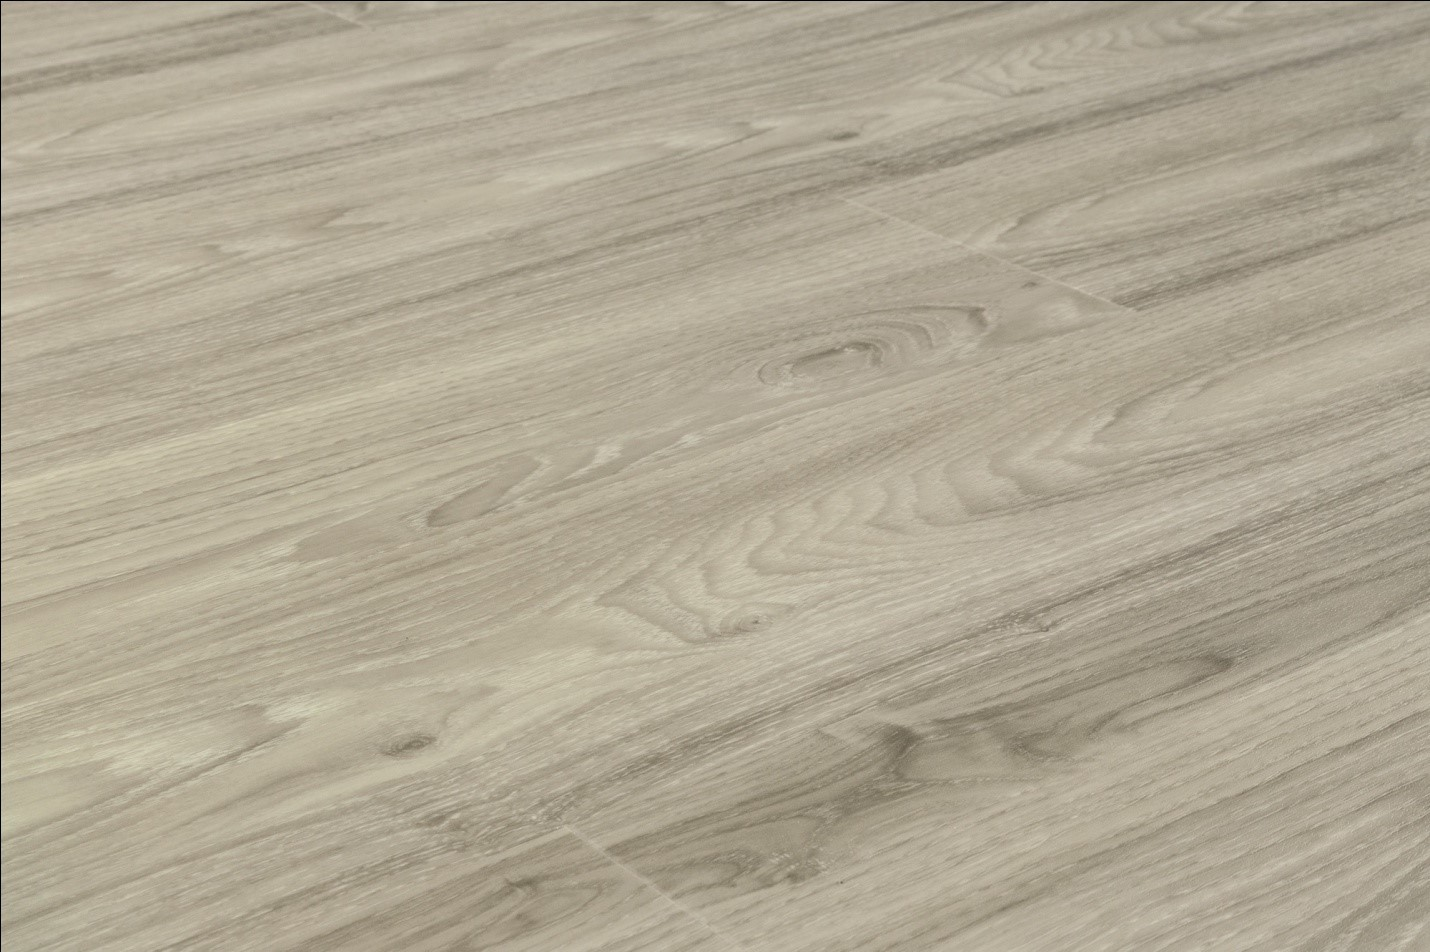 Floor Coverings For Kitchens Vinyl Flooring Solutions With Easy Installation By Experts My